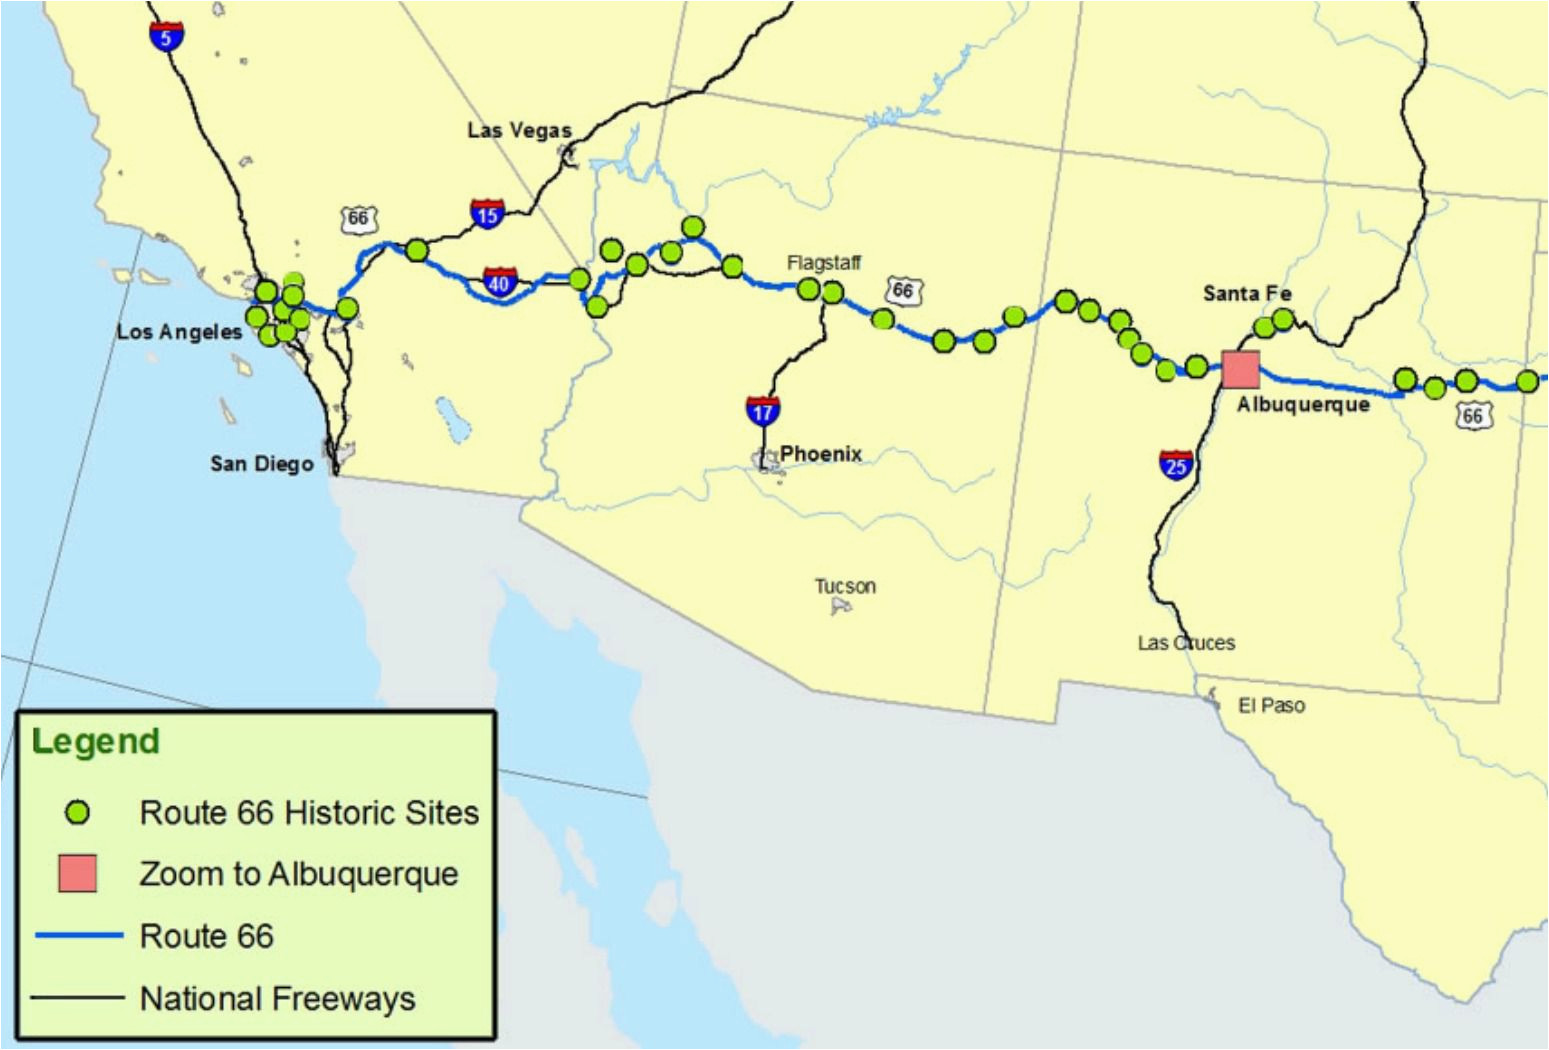 Map Of Arizona Utah And Colorado.Map Of Utah Colorado Arizona And New Mexico Maps Of Route 66 Plan